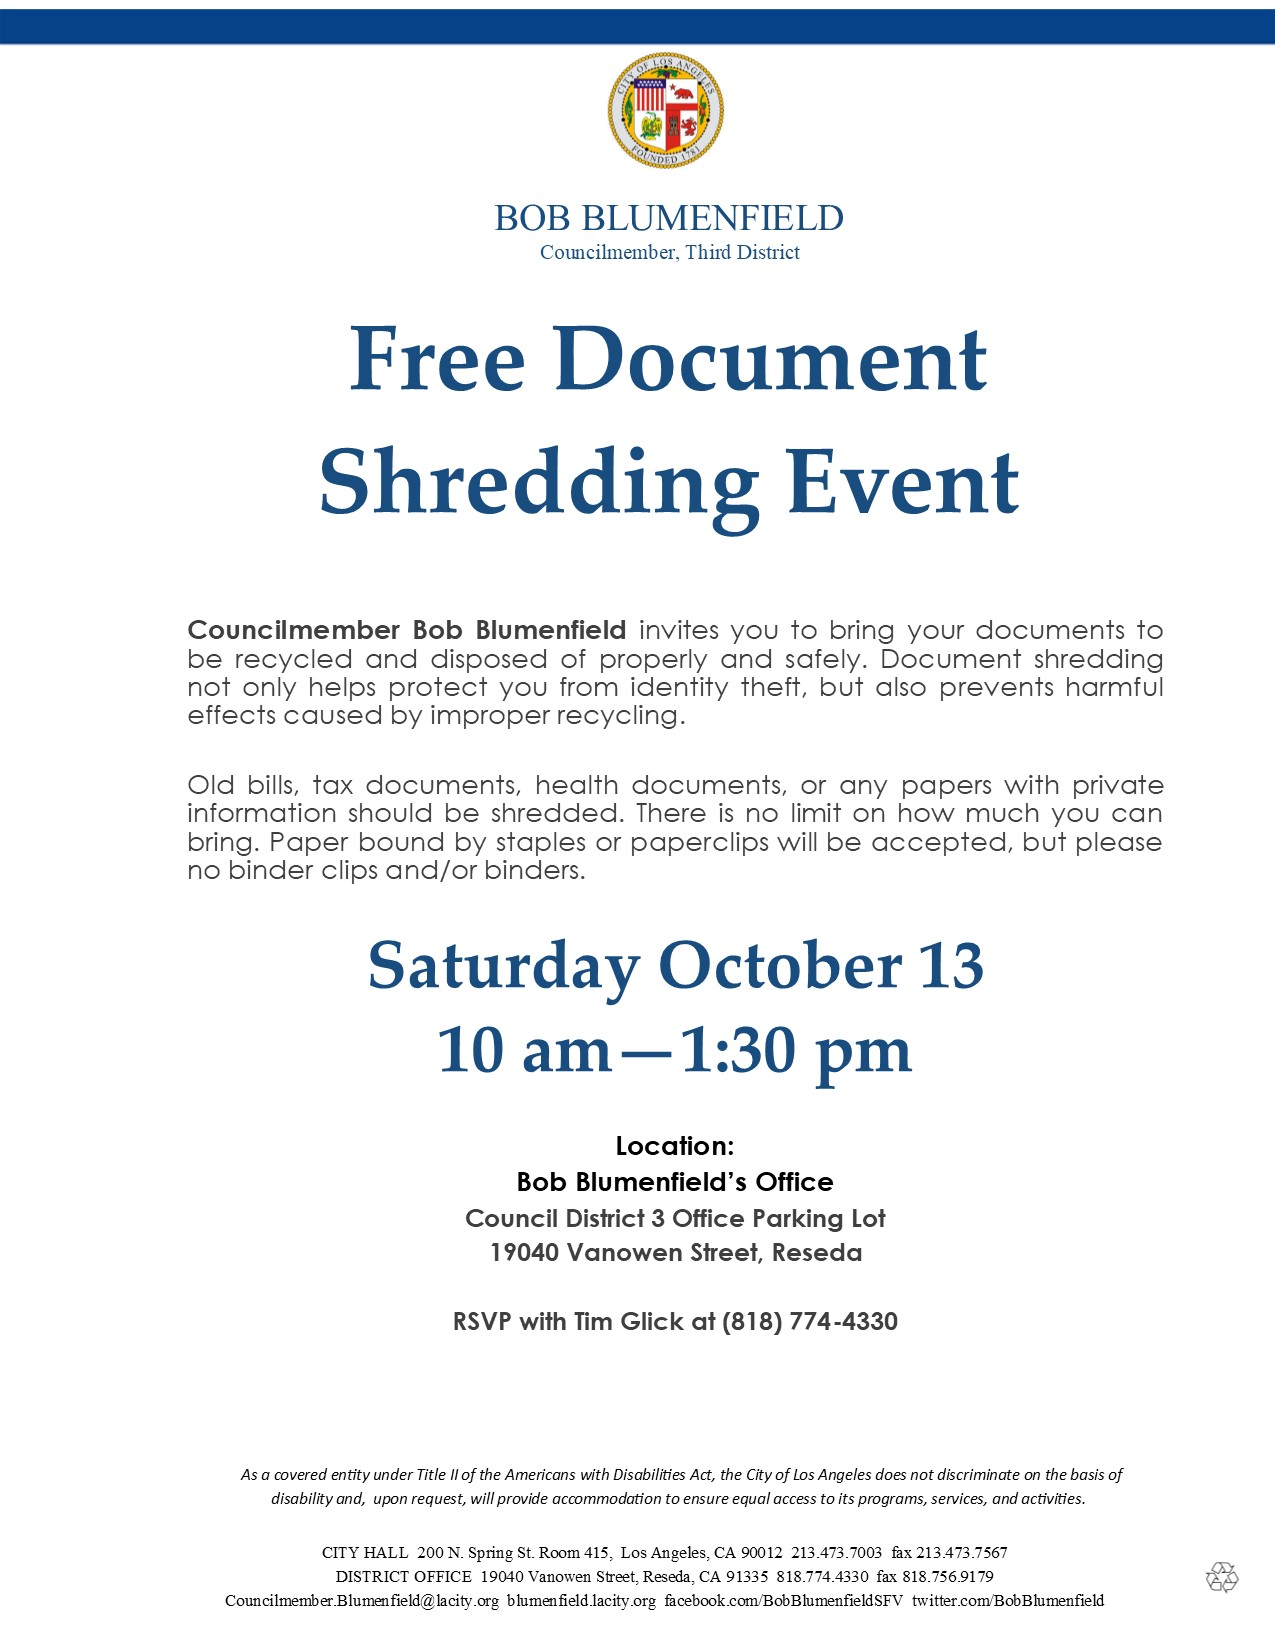 updated_shredding_event_flier_2018.jpg